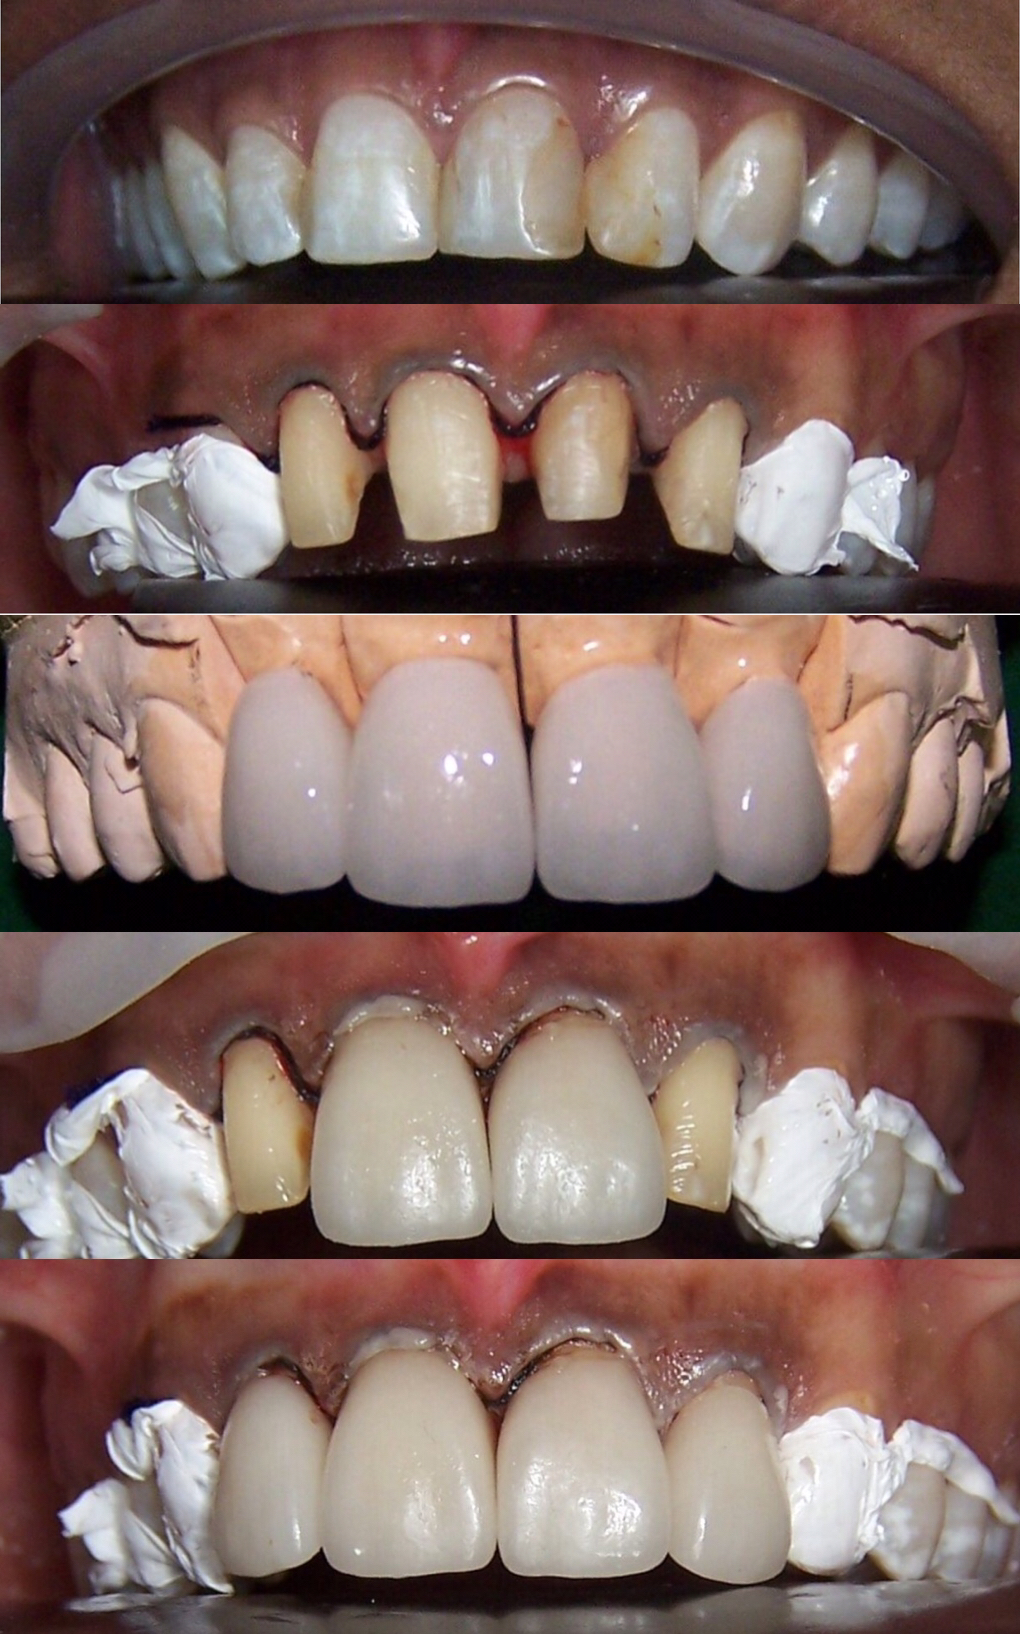 The bond between original tooth and porcelain veneer is critical as it not only provides the esthetic perfection desired, but also a strong bond which is essential for correct veneer function.